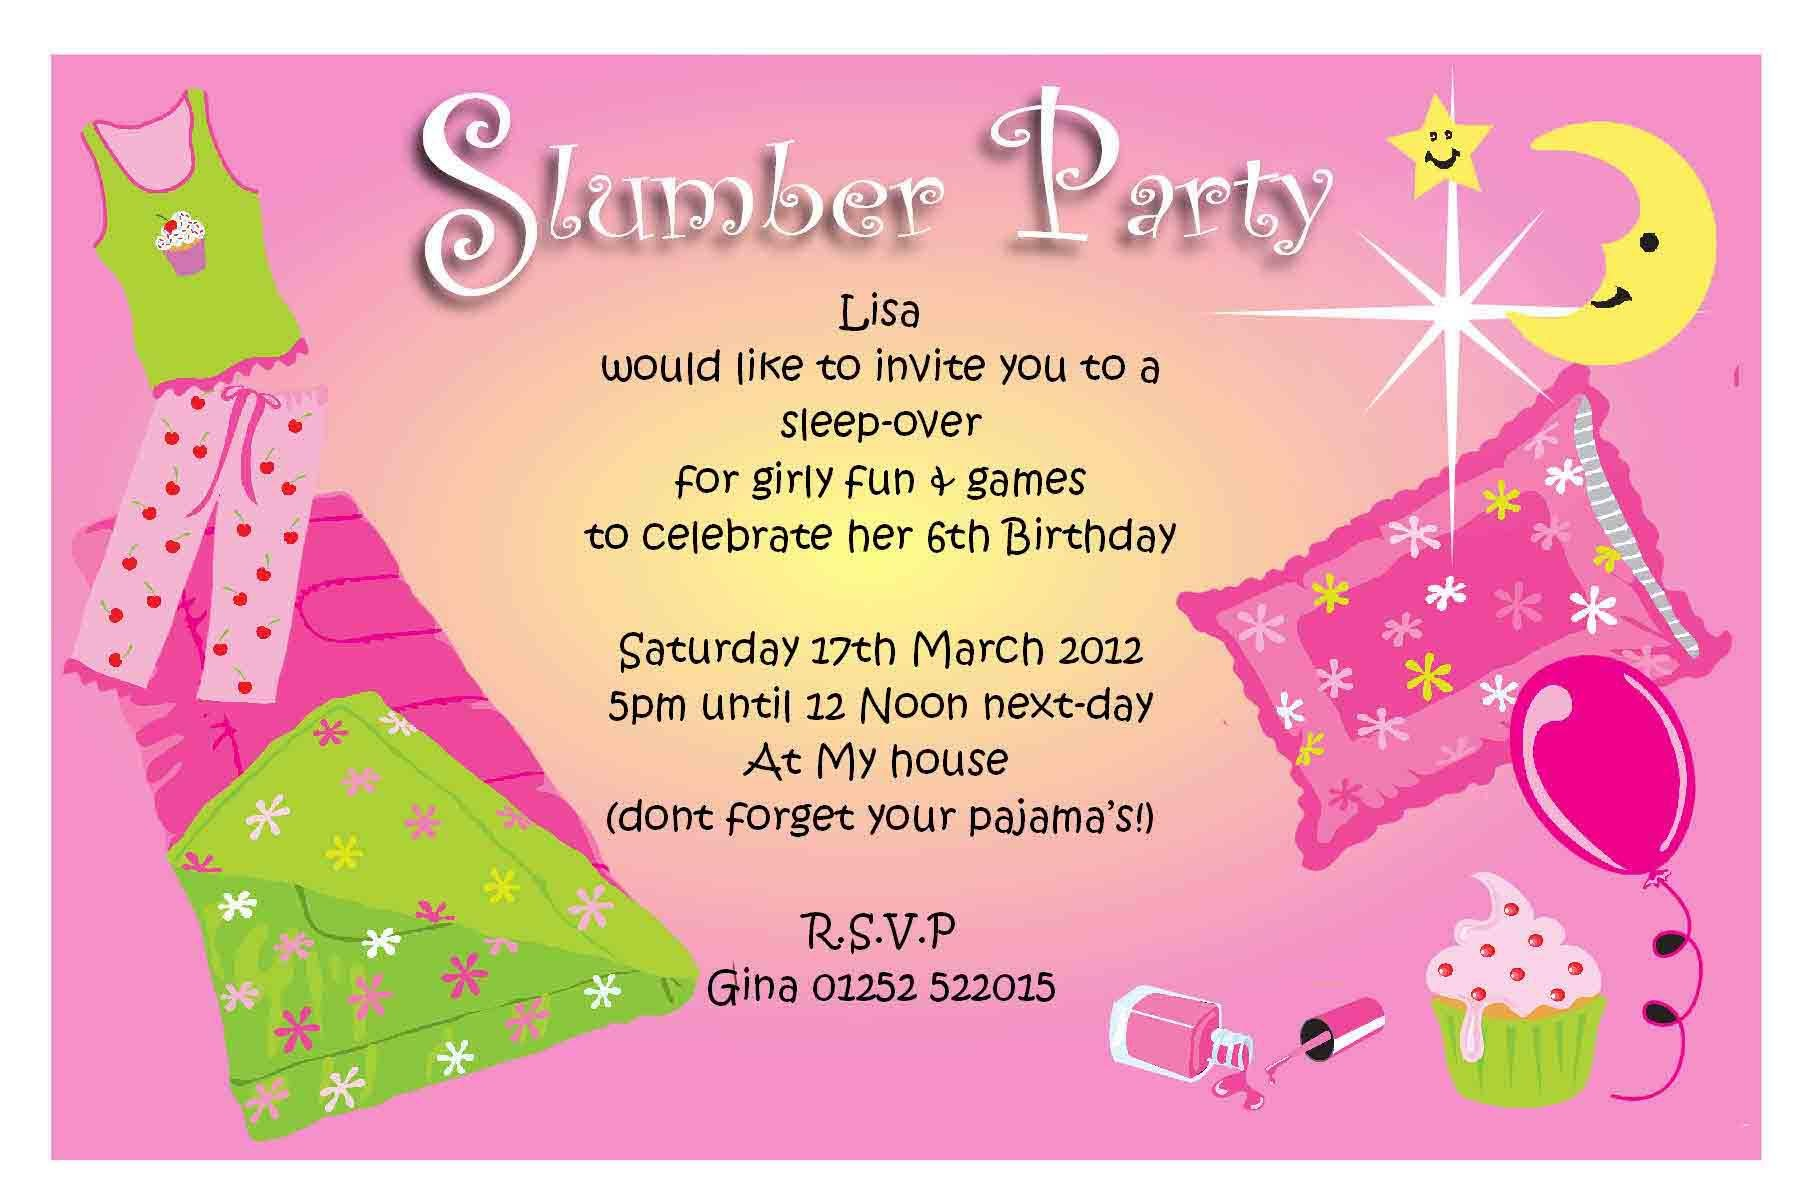 an invitation card for a birthday party ; invitation-card-sample-for-party-new-birthday-invitations-cards-birthday-party-invitation-card-of-invitation-card-sample-for-party